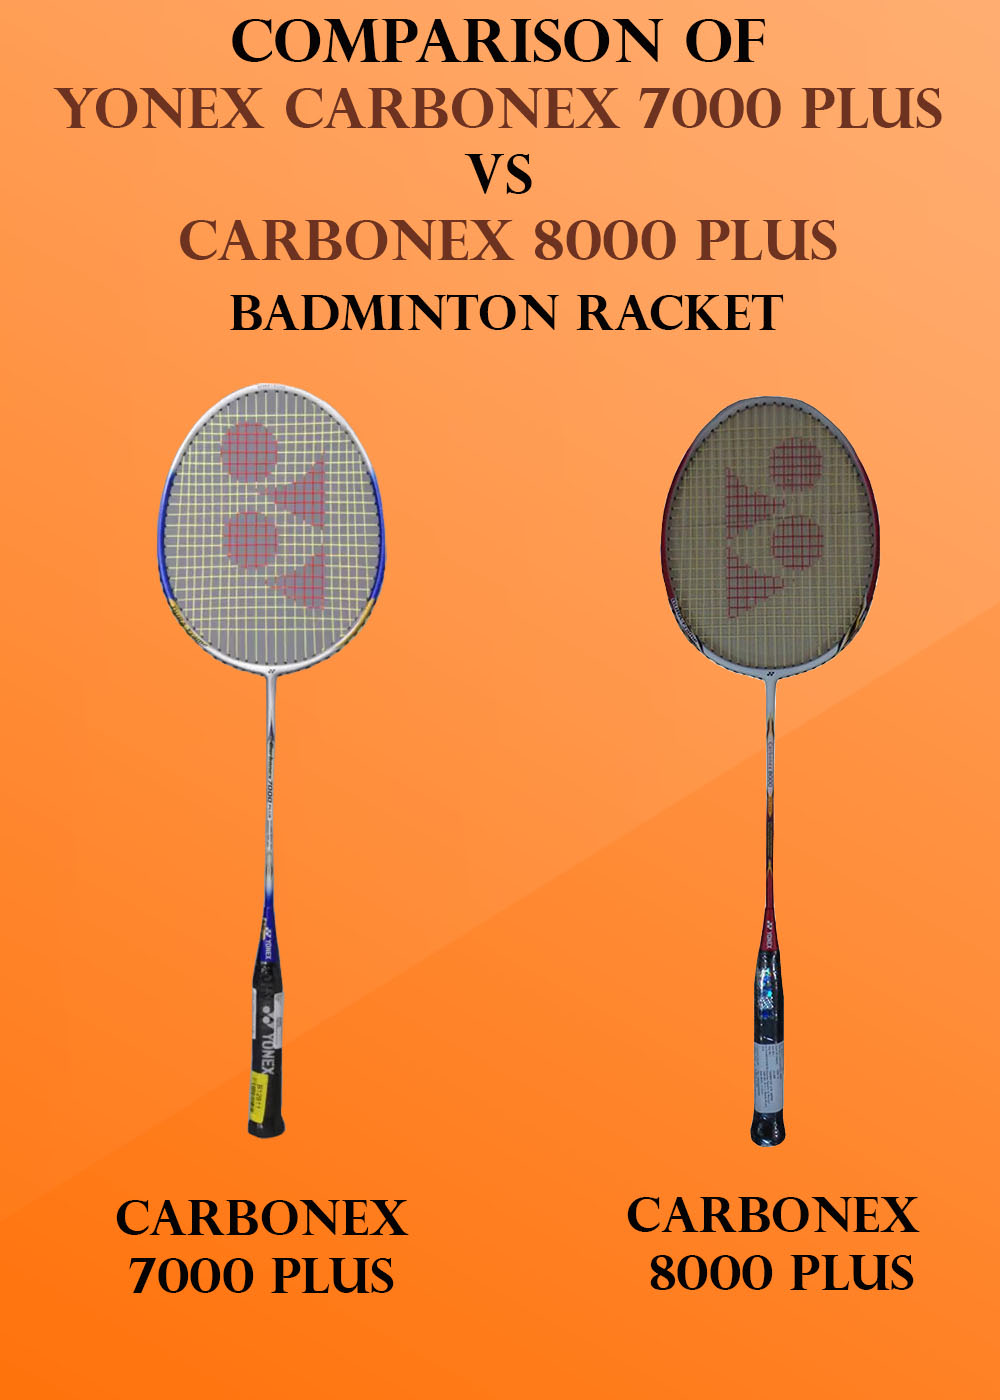 Comparison of Yonex Carbonex 7000 Plus VS Carbonex 8000 Plus_1